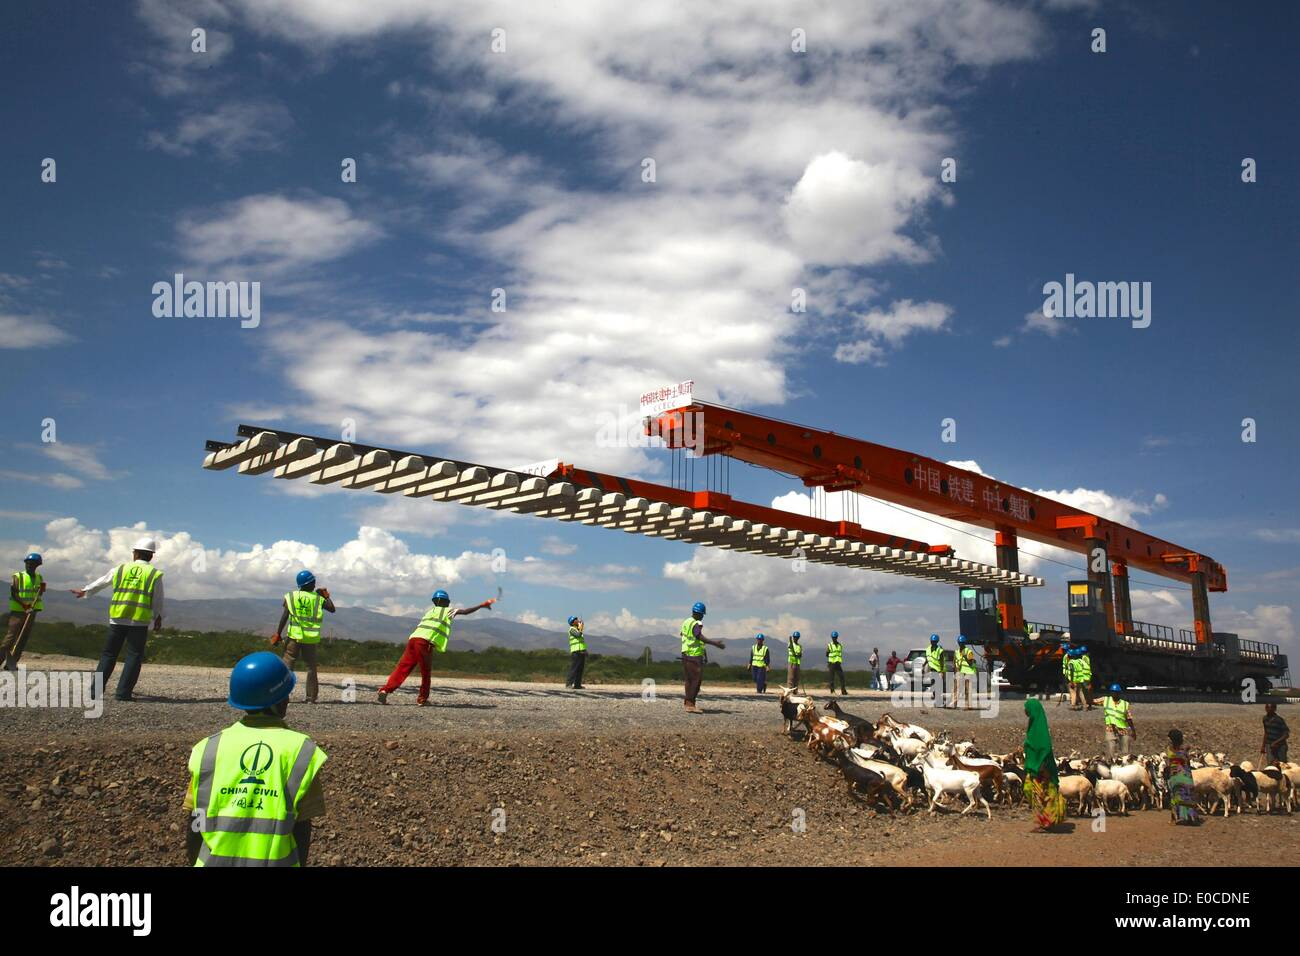 (140509) -- DIRE DAWA, May 9, 2014 (Xinhua) -- People work at the construction site of the electric railway in Dire Stock Photo